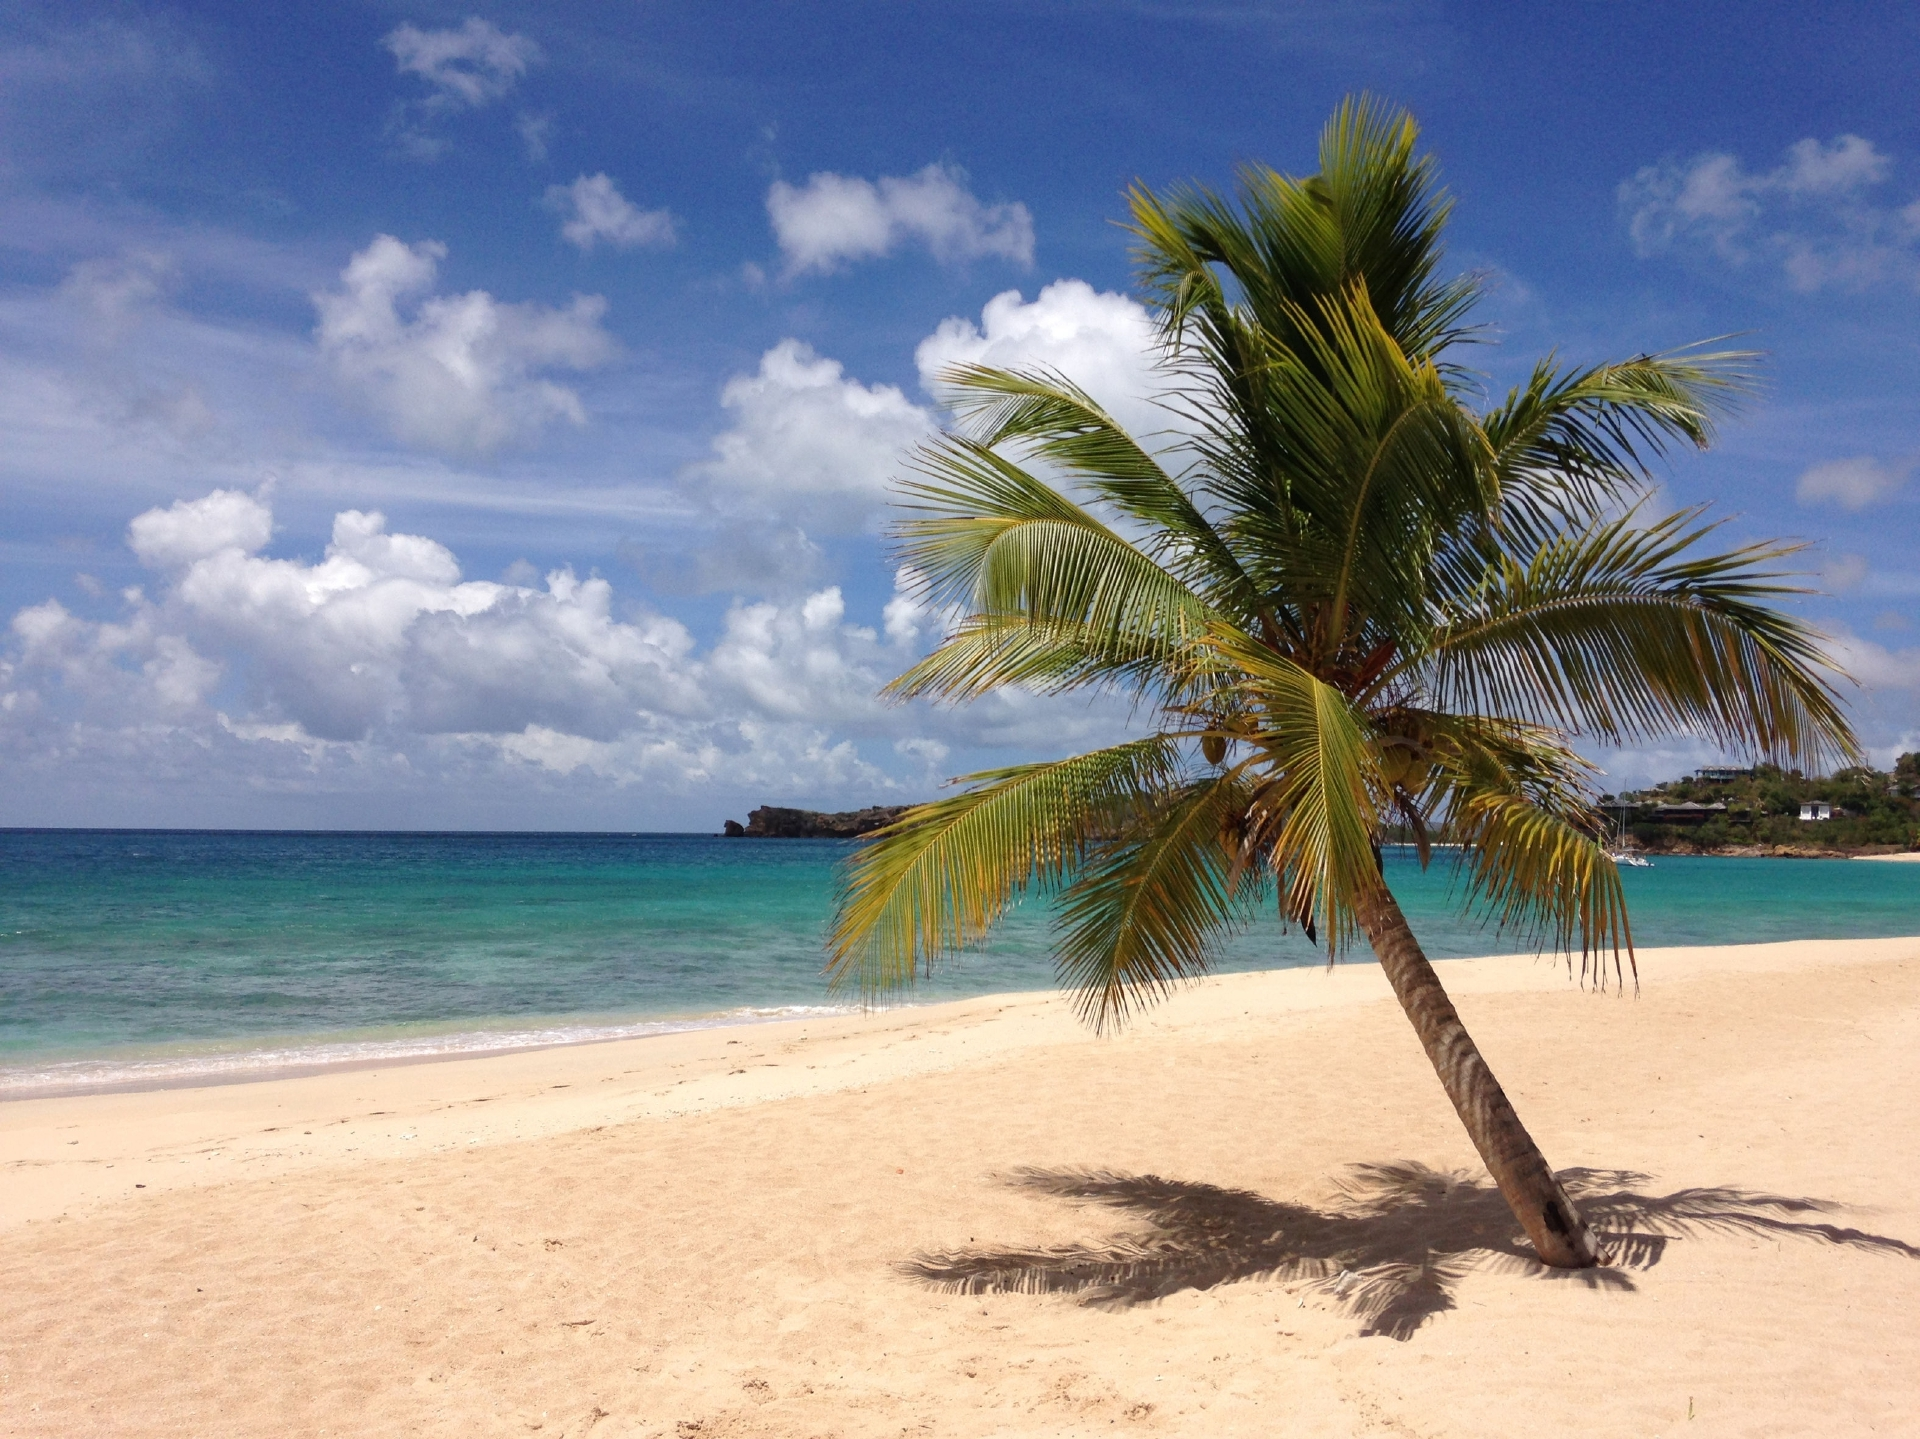 Palm tree on a beach in Antigua.